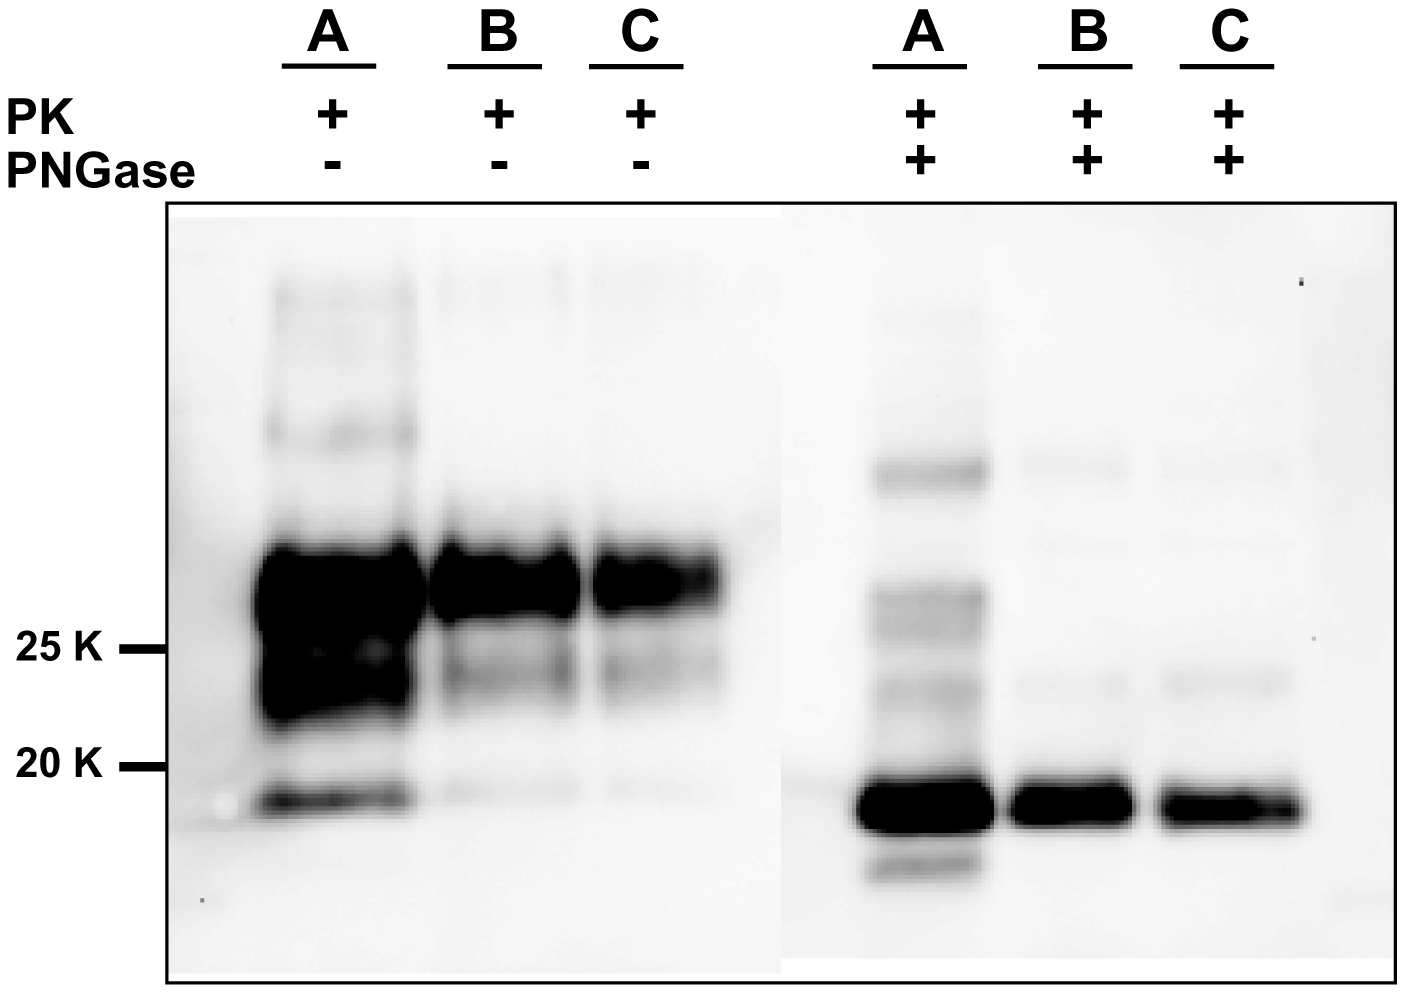 Comparison between PrP<sup>Sc</sup> from seeded and unseeded PMCA reactions.